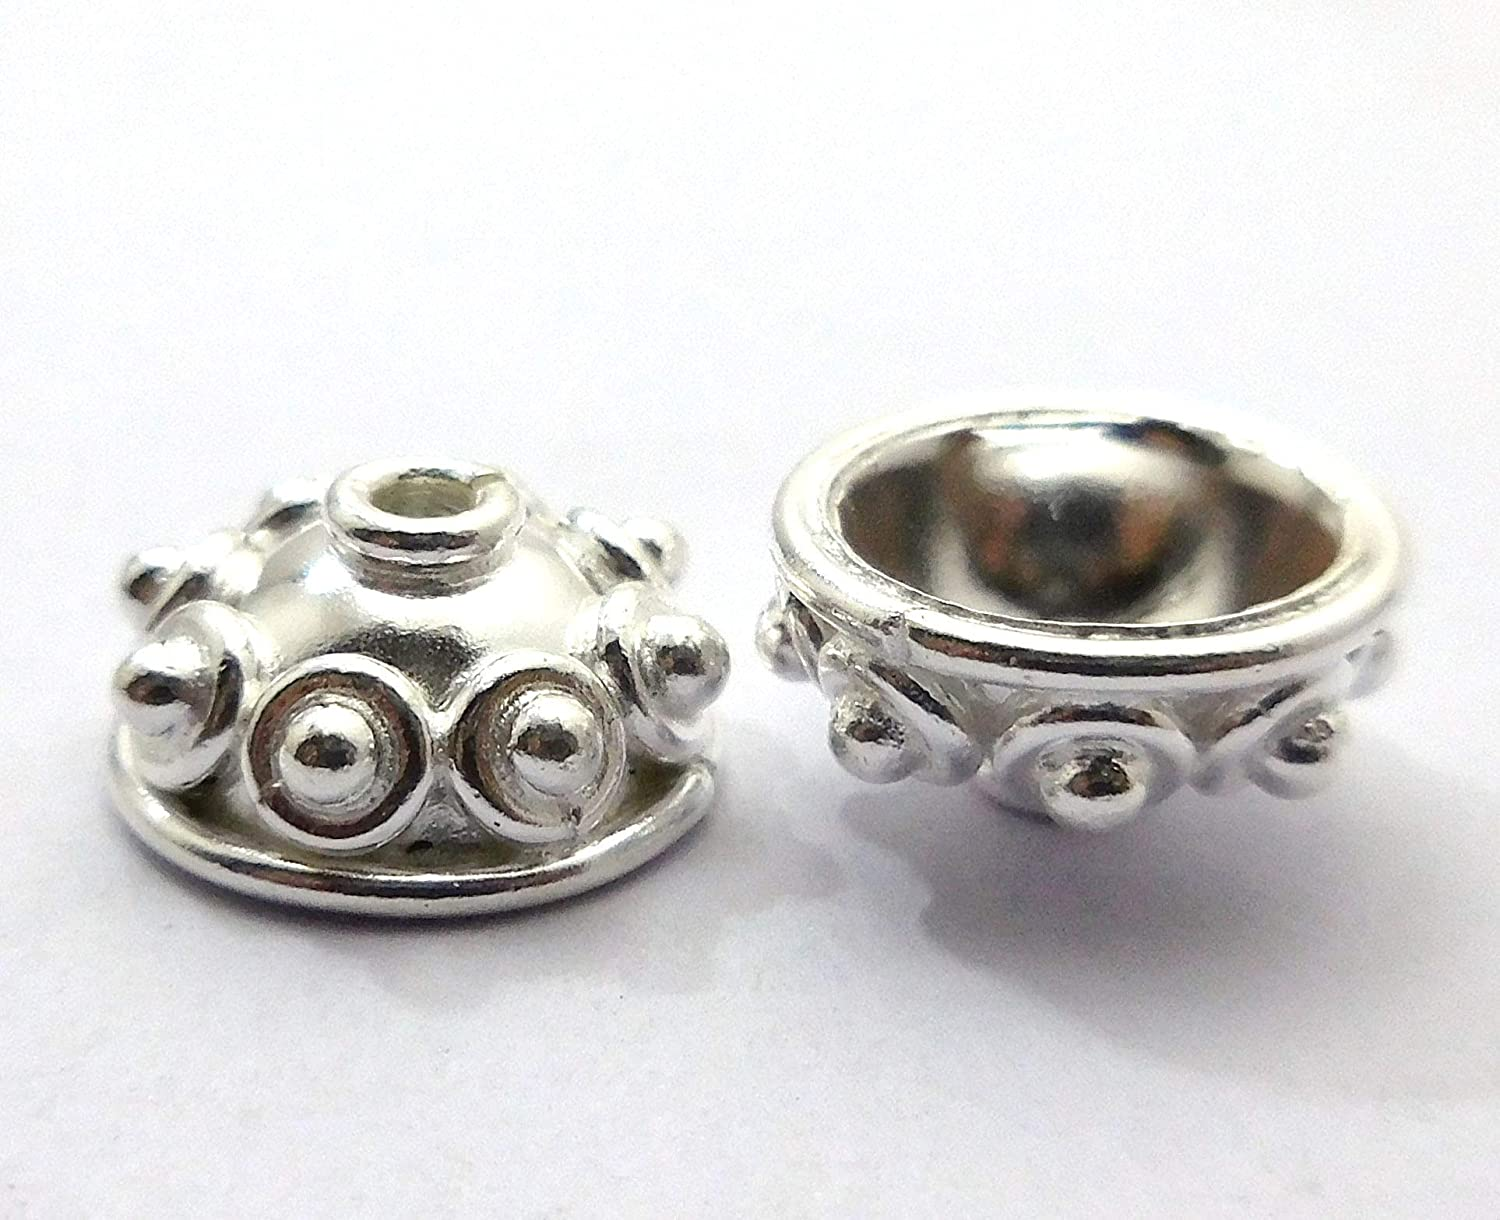 6 Pieces 15X7mm Bali Bead Cap 12mm Inner Sterling Silver Plated B275